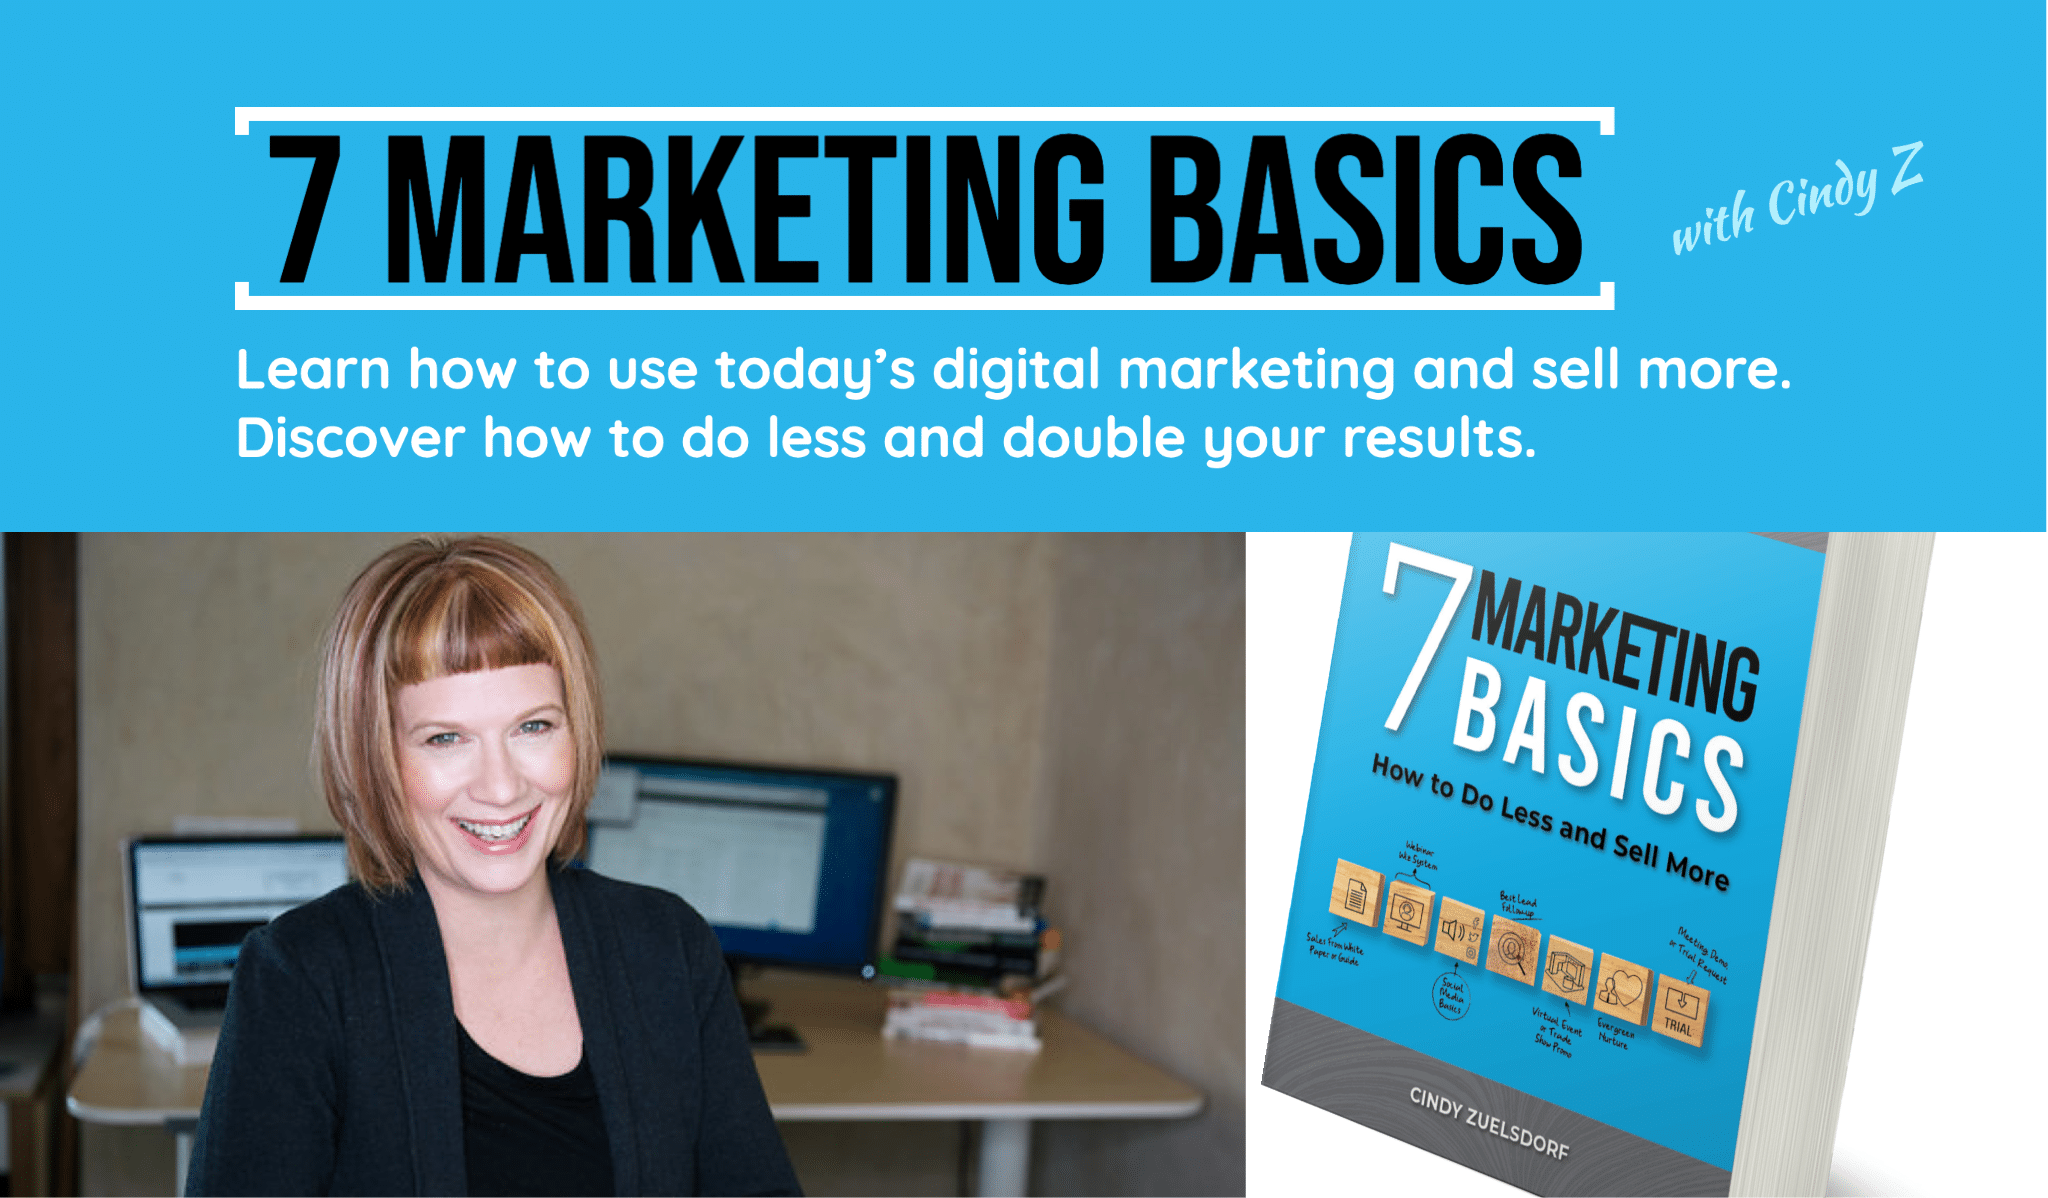 Join the 7 Marketing Basics facebook group